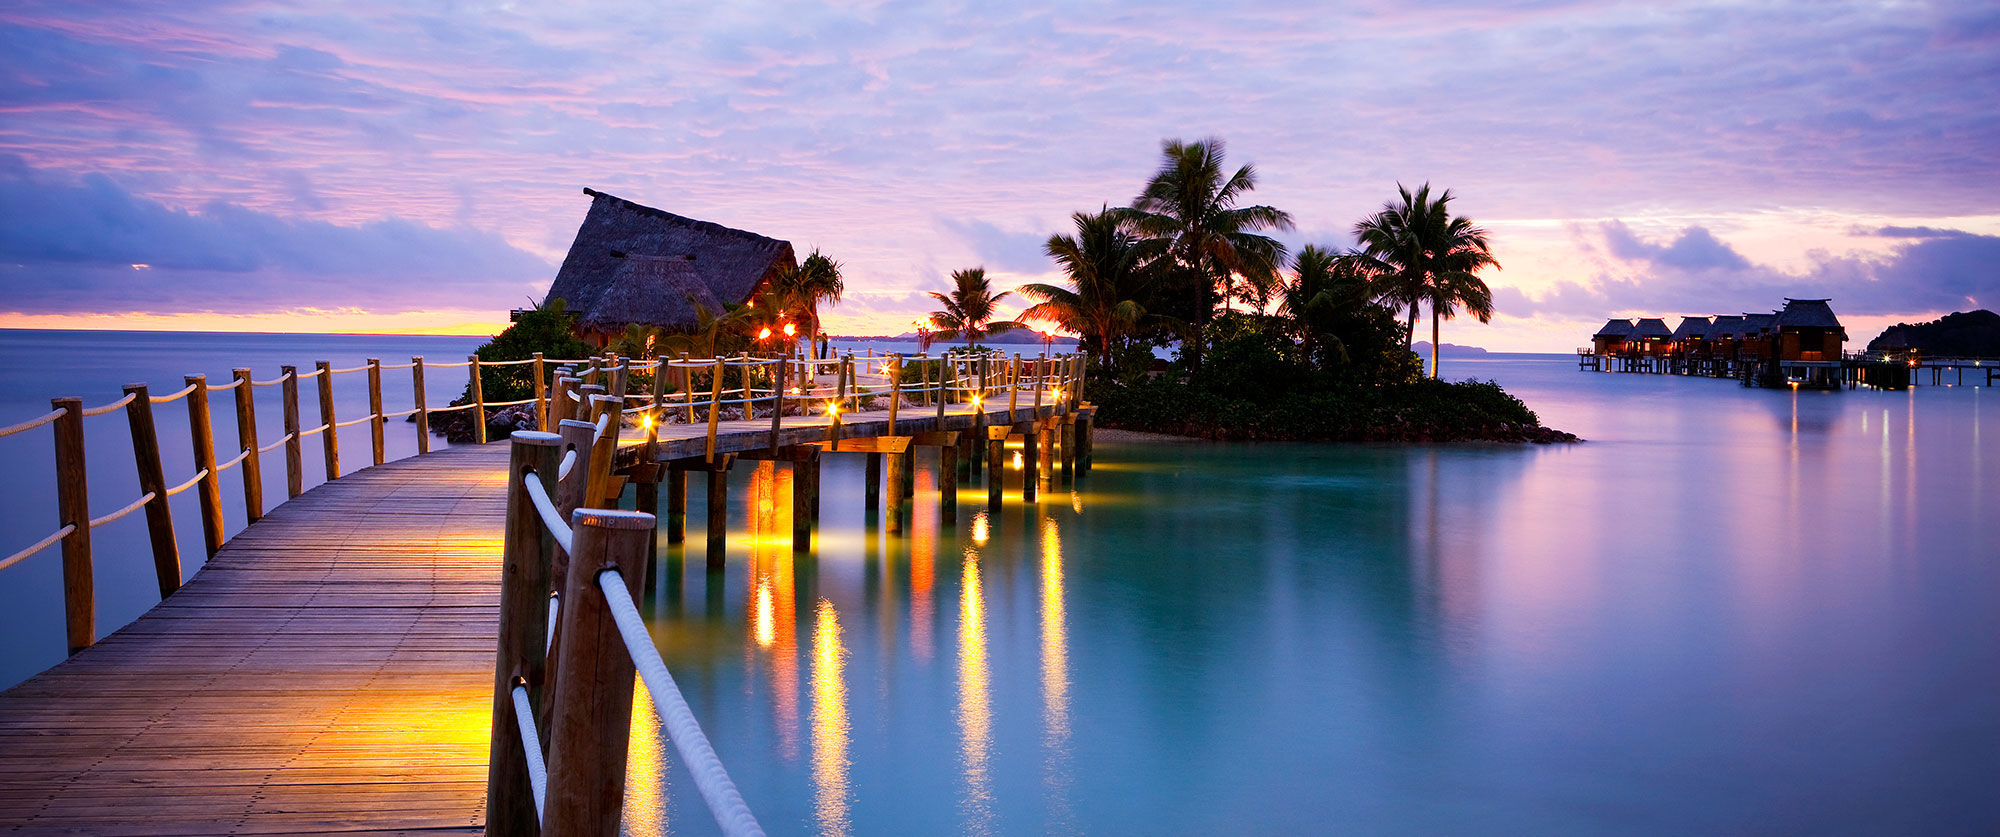 Fiji resorts fiji overwater bungalow likuliku lagoon for Nice places to go for honeymoon